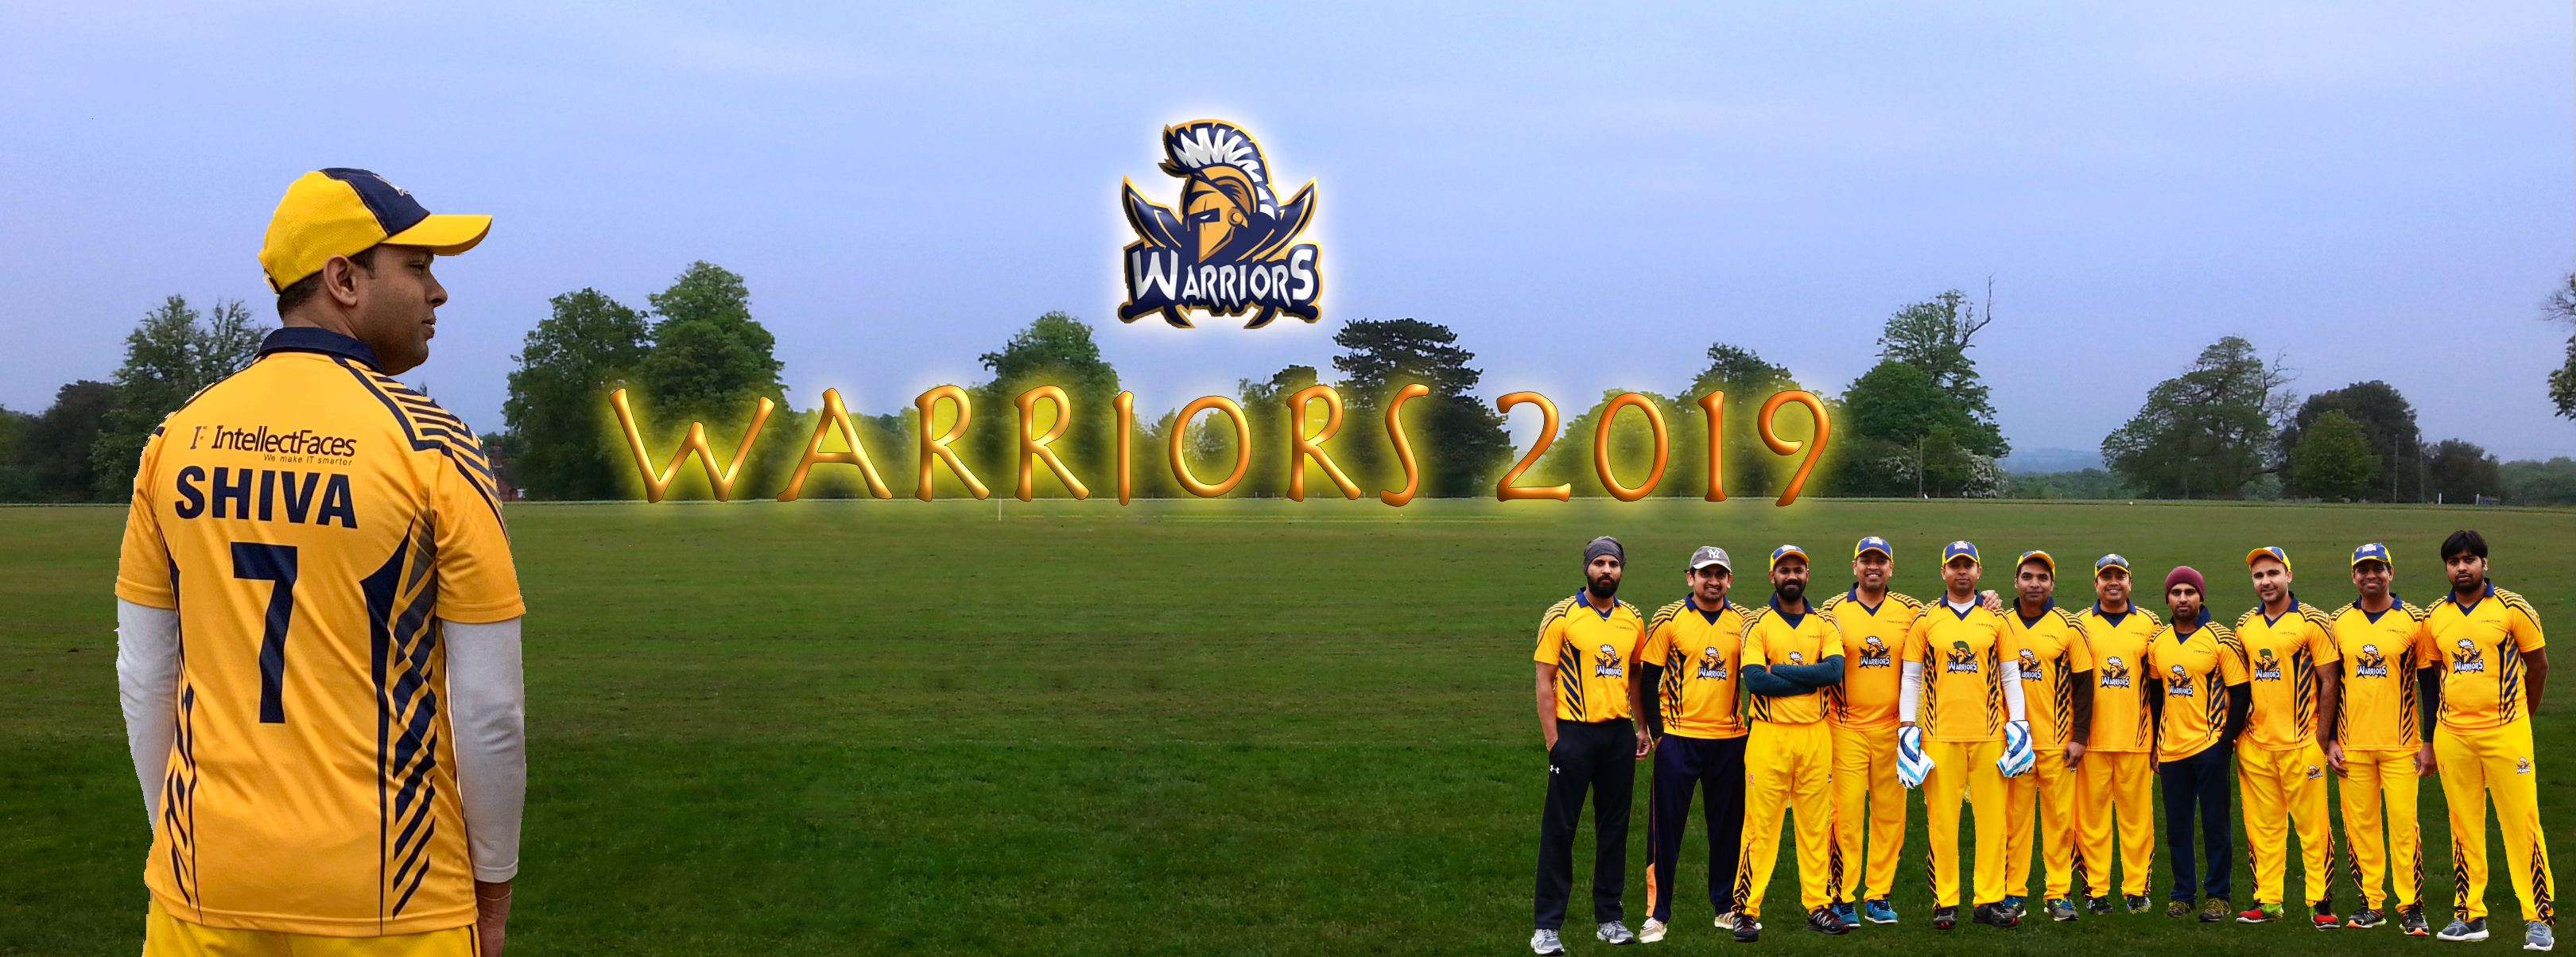 Warriors 2017